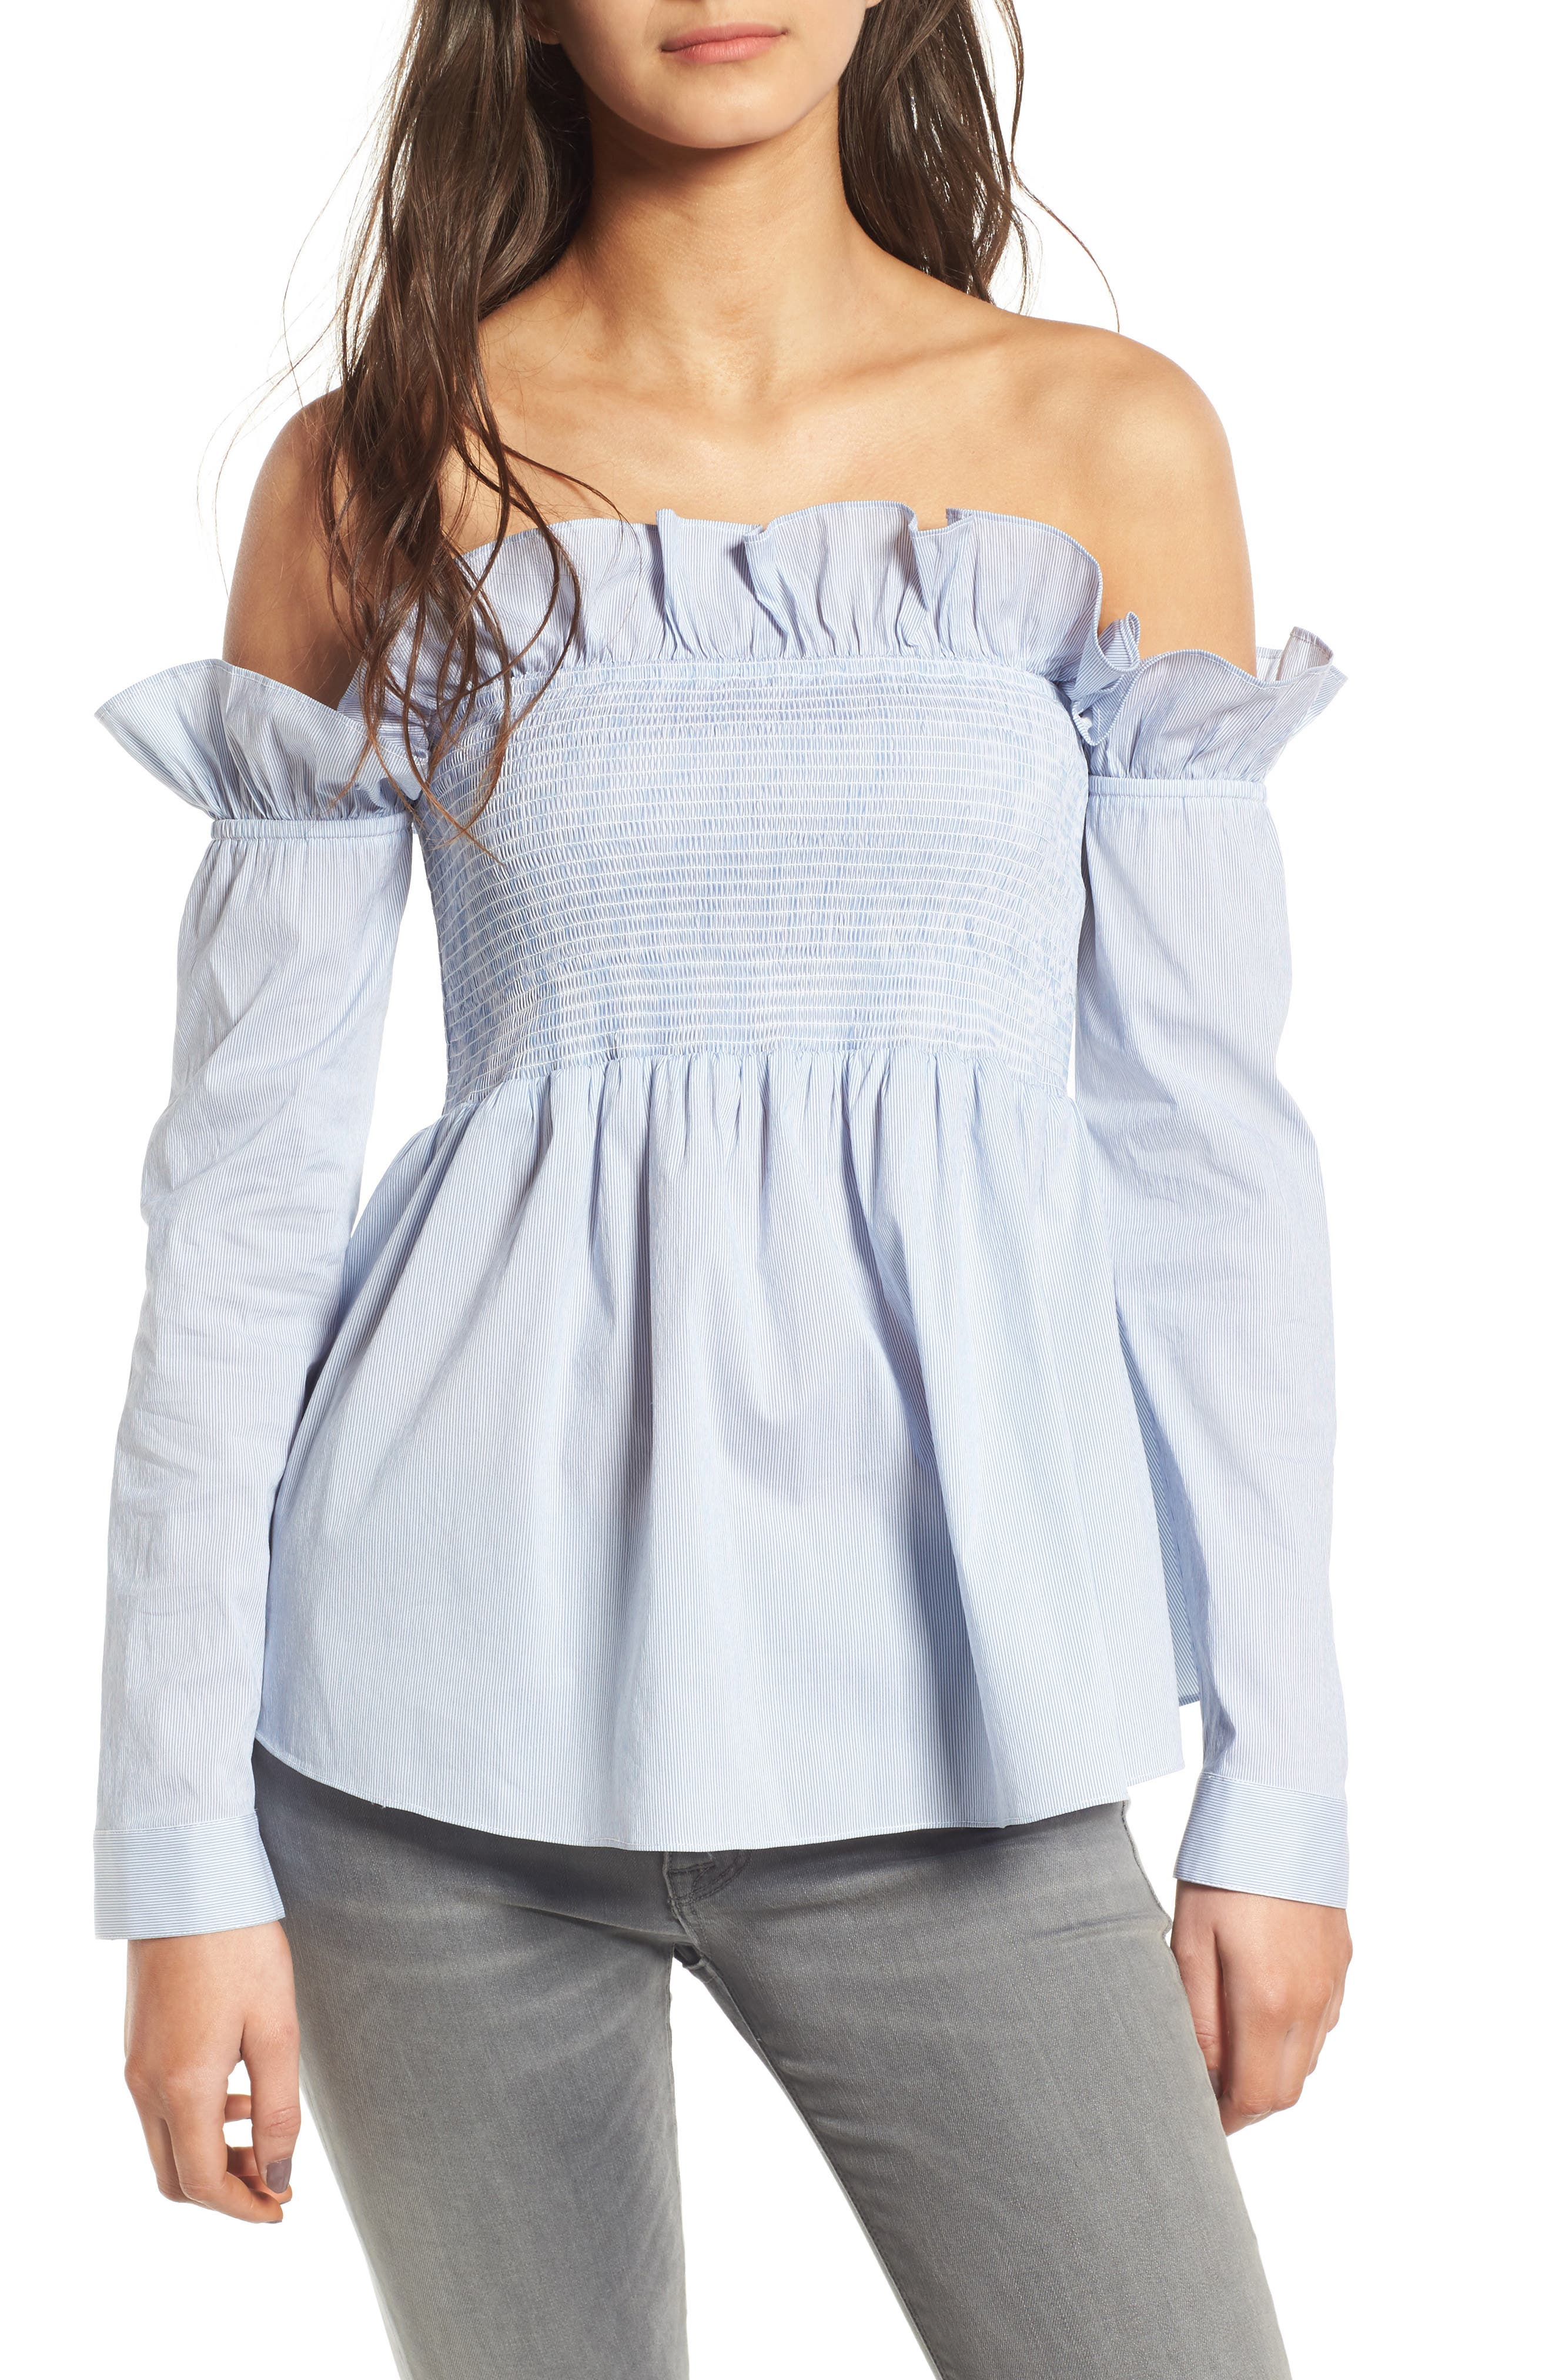 Alternate Image 1 Selected - Chelsea28 Ruffle Smocked Off the Shoulder Top